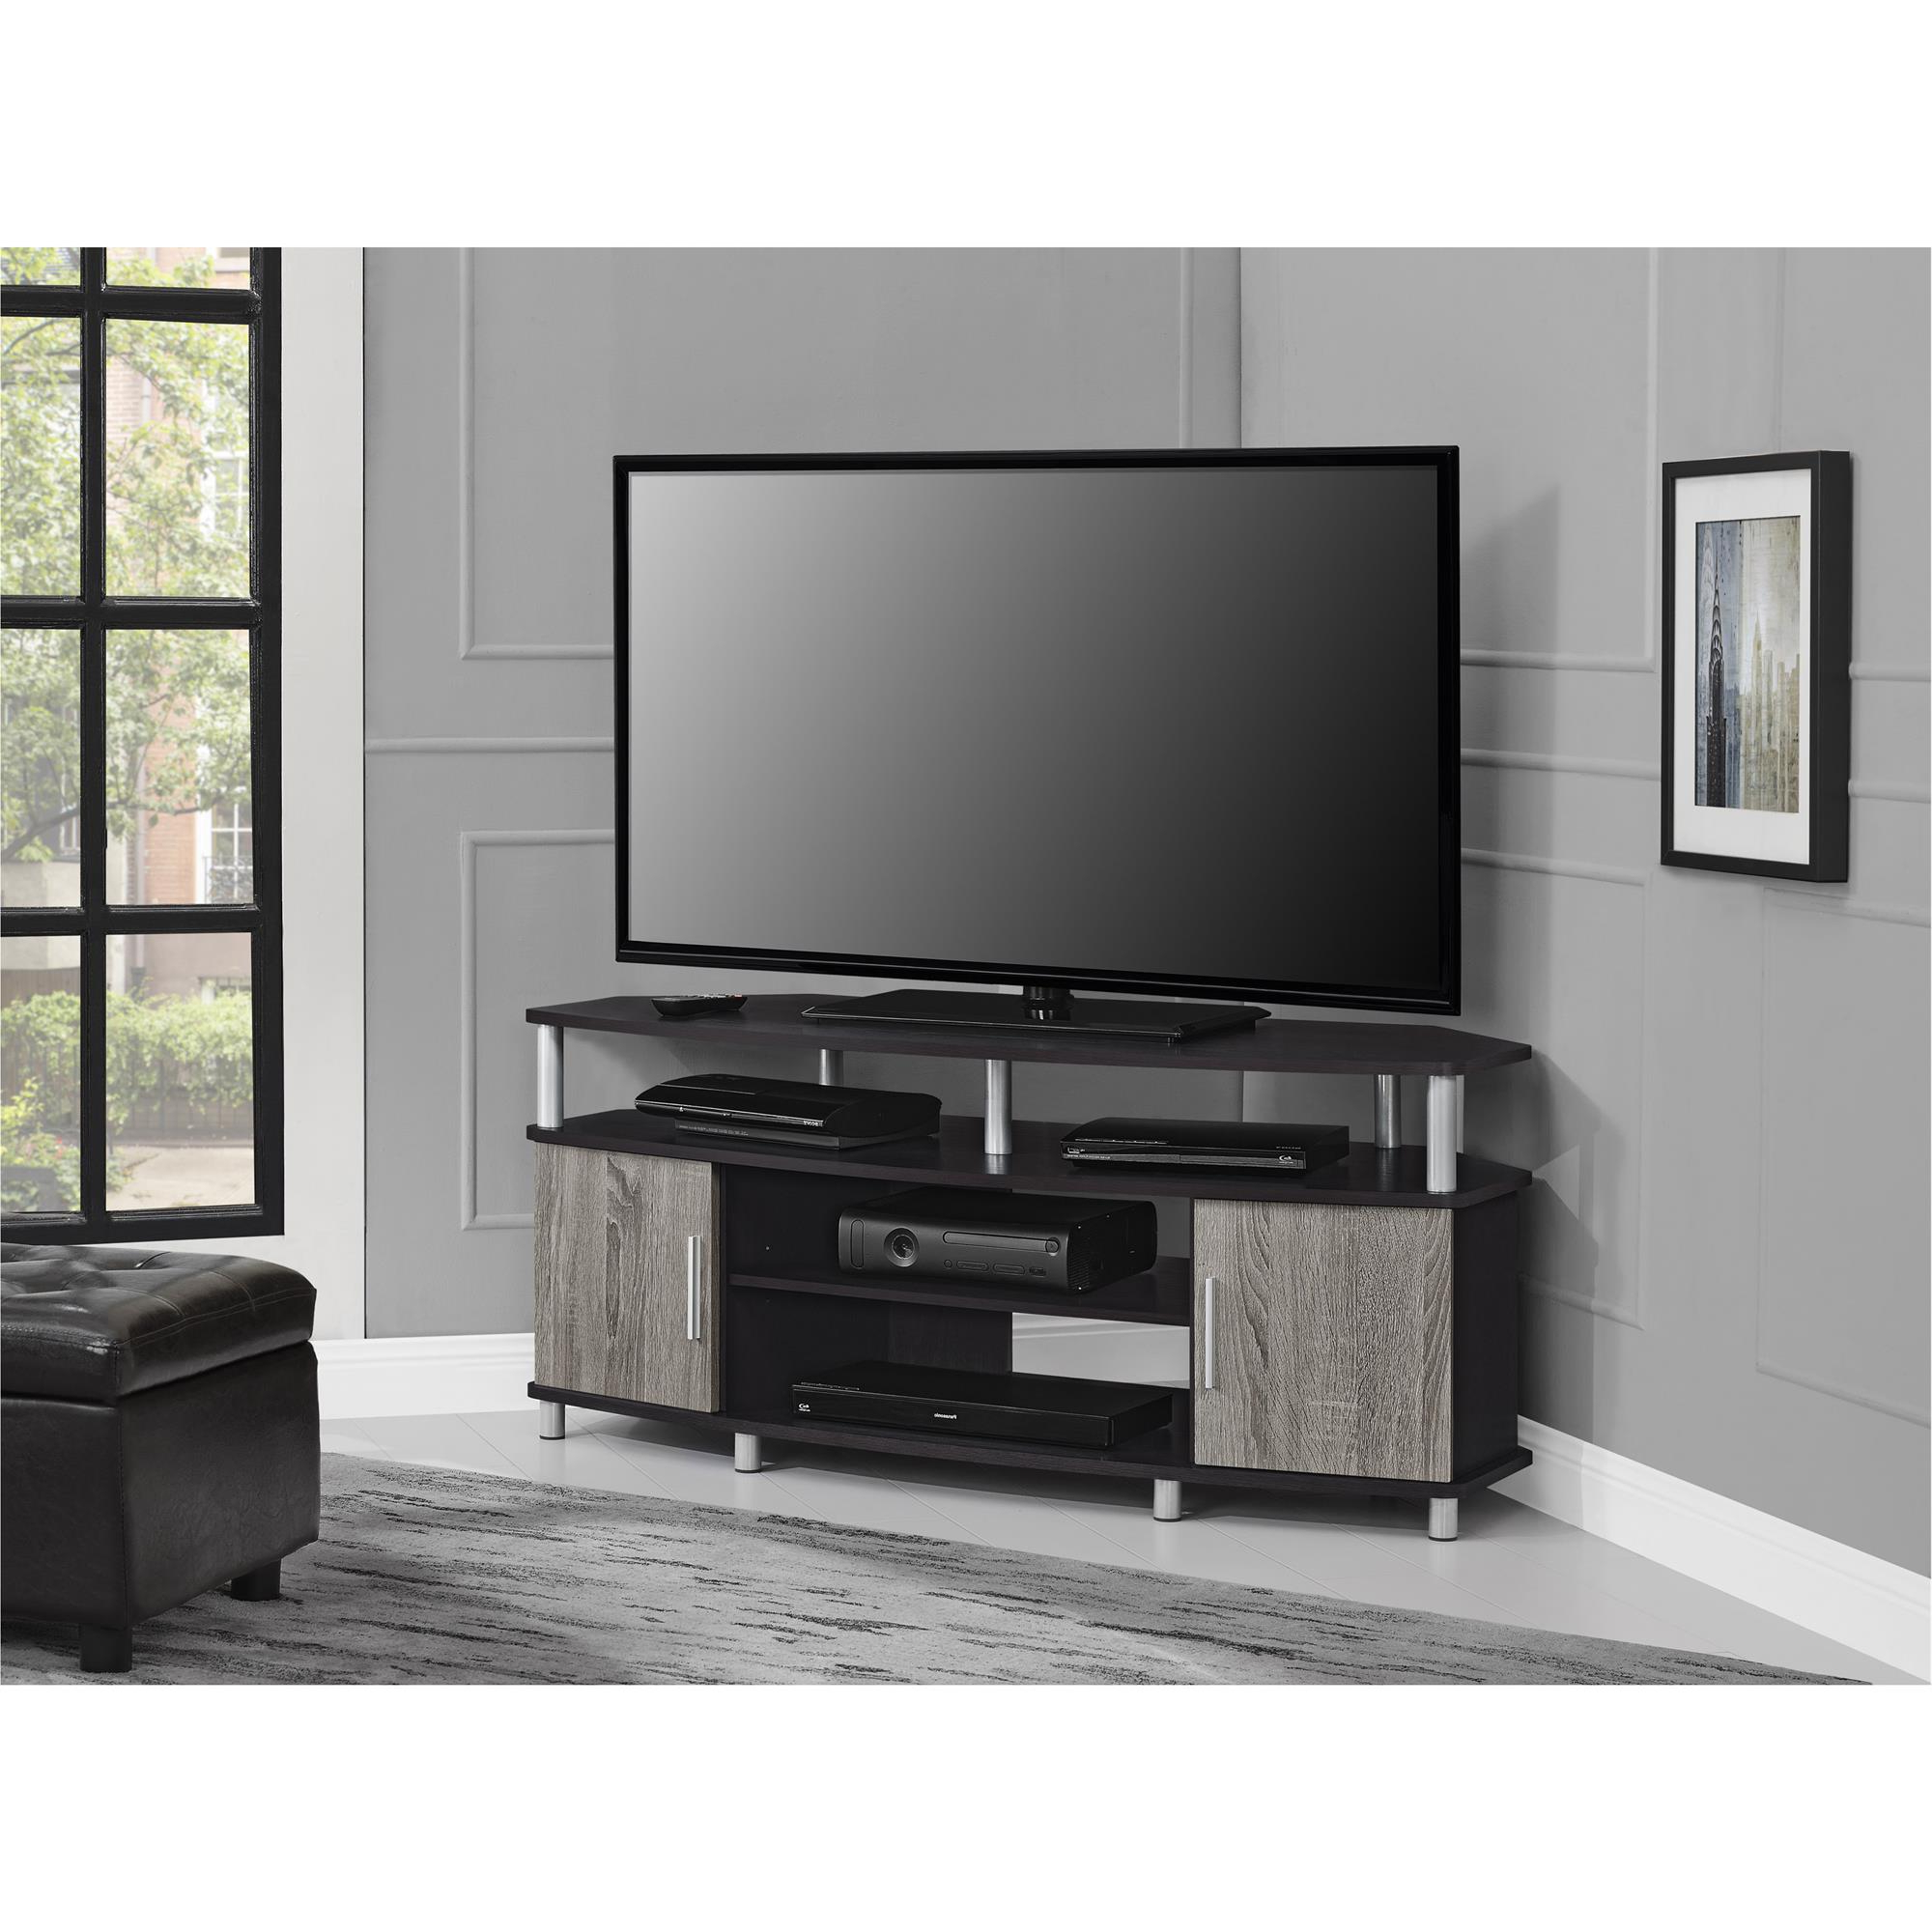 Tv Stands With Mount Mid Century Modern Stand Credenzas Designs For Throughout Favorite Luxury Tv Stands (View 18 of 20)